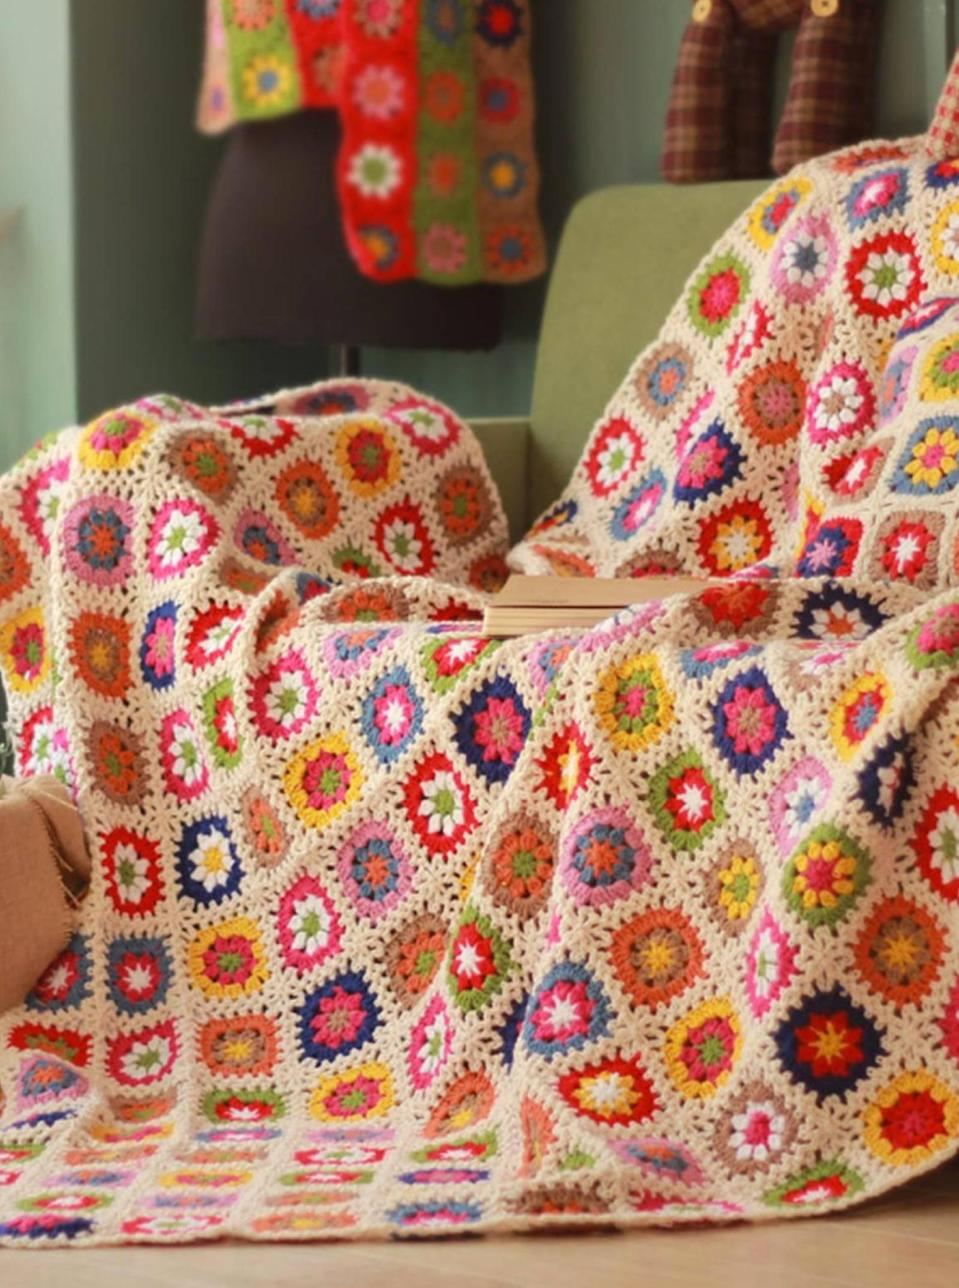 """If your grandma never taught you how to crochet a blanket yourself, support independent artisans and add this pretty one to your couch or bed. $39, Etsy. <a href=""""https://www.etsy.com/listing/884055447/granny-square-daisy-crochet-blanket"""" rel=""""nofollow noopener"""" target=""""_blank"""" data-ylk=""""slk:Get it now!"""" class=""""link rapid-noclick-resp"""">Get it now!</a>"""